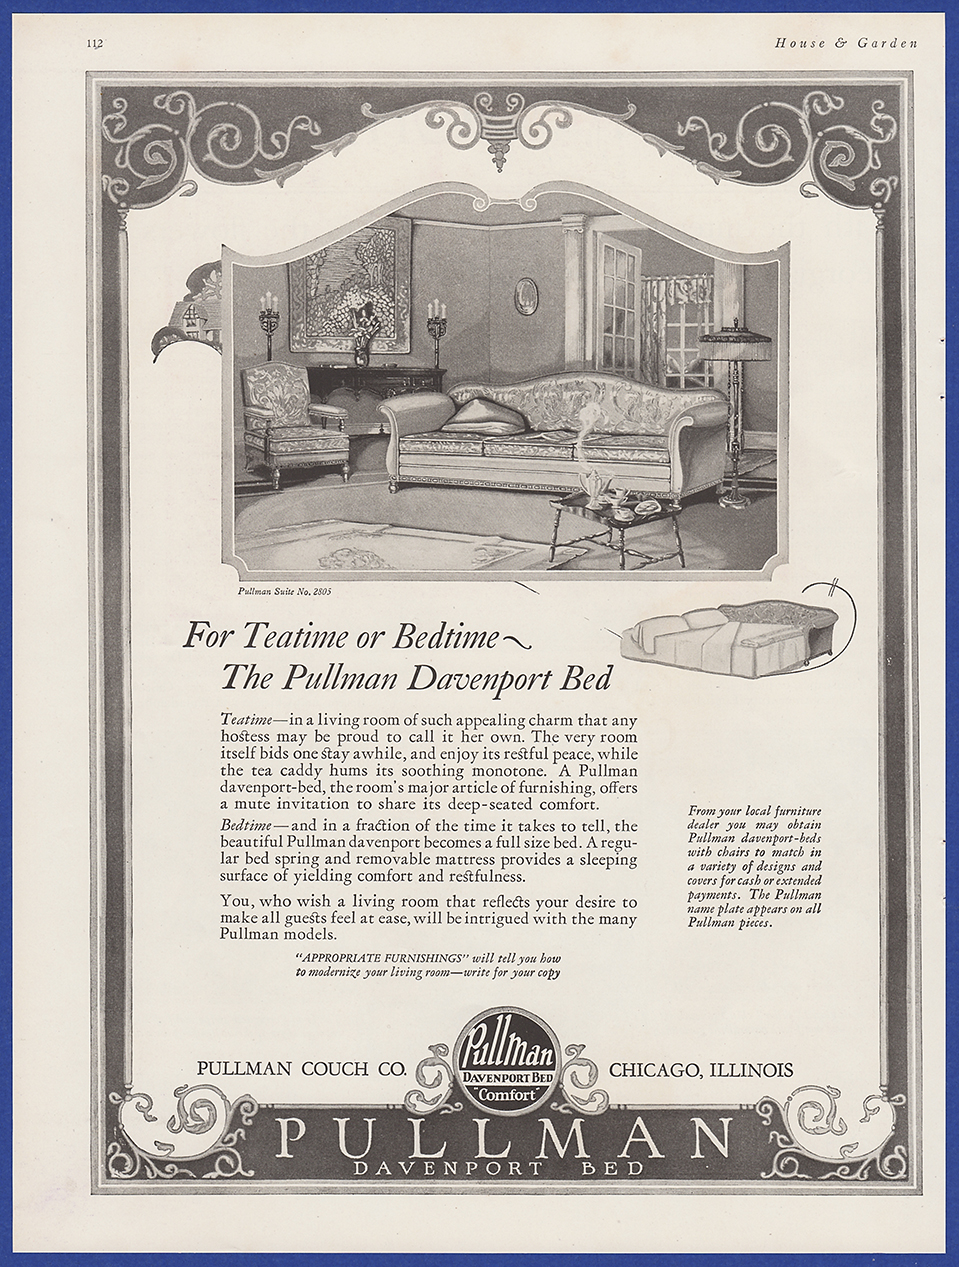 Sensational Details About Vintage 1924 Pullman Davenport Bed Furniture Couch Home Decor Print Ad 20S Pdpeps Interior Chair Design Pdpepsorg